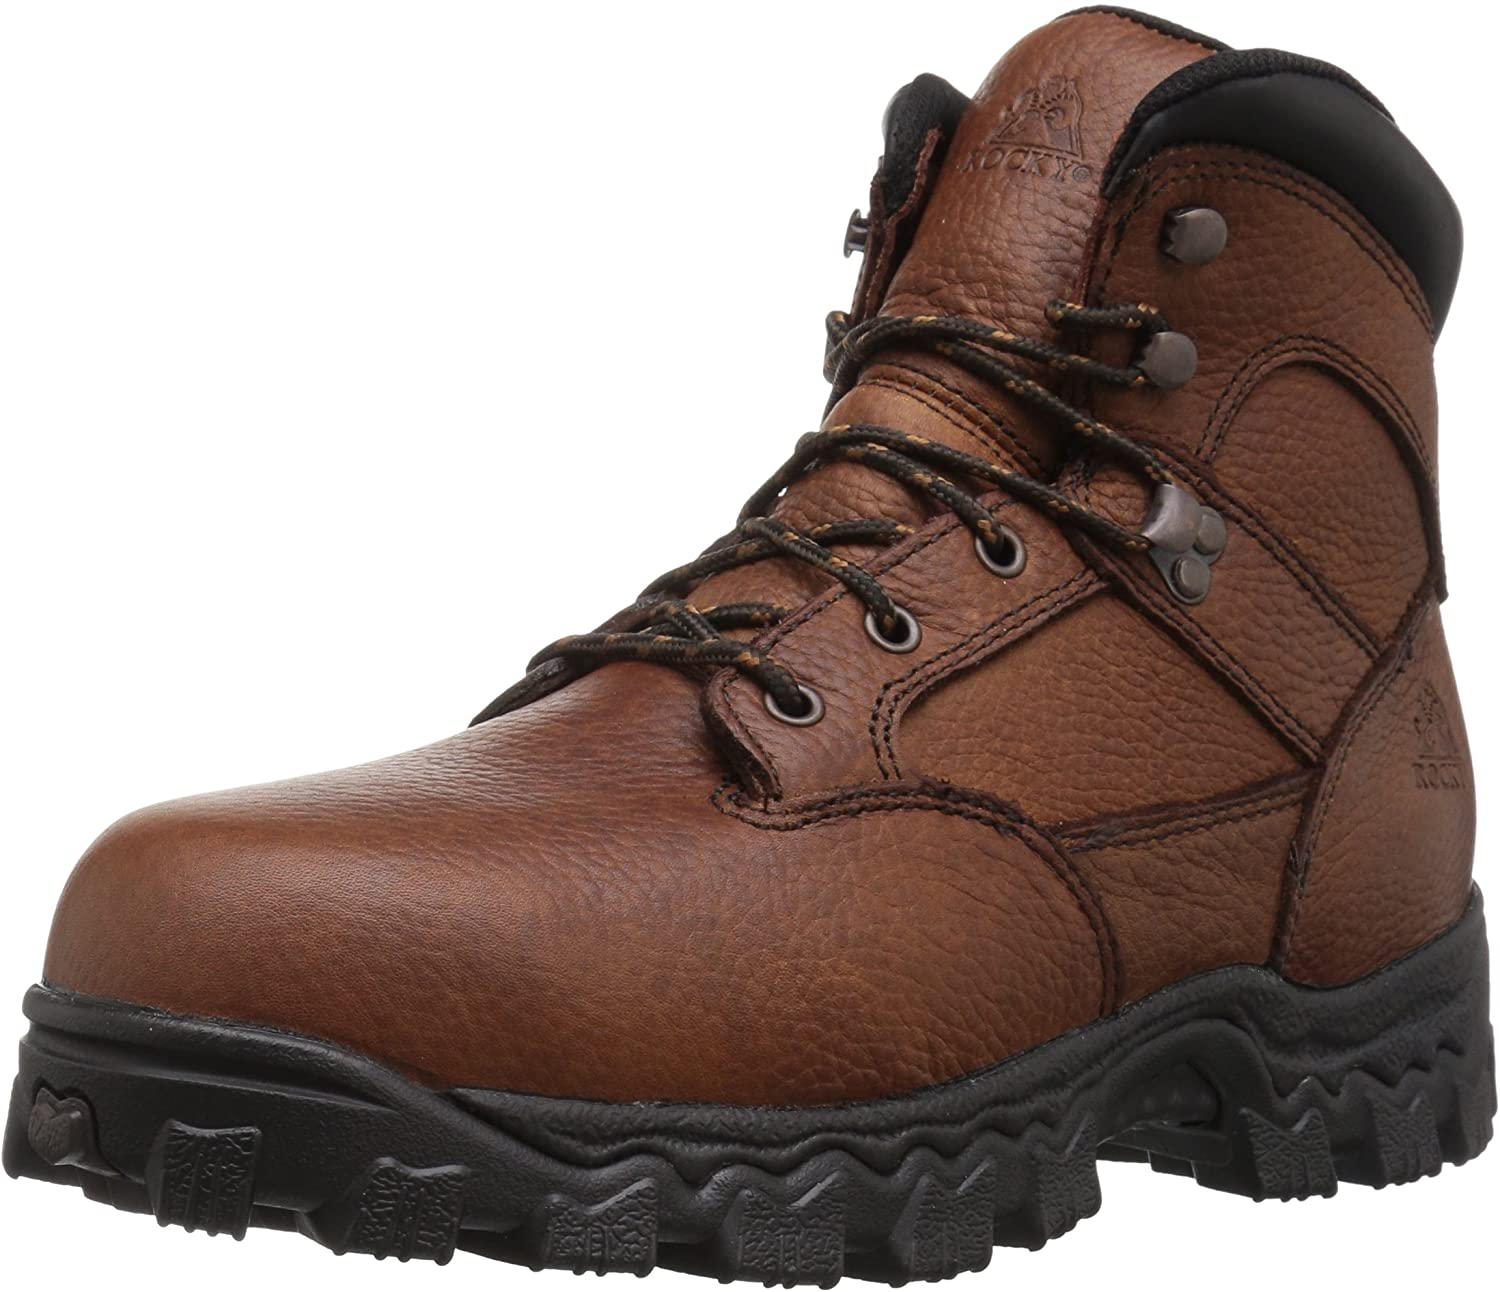 Take a look at another great pair of electrician boots in our TOP.